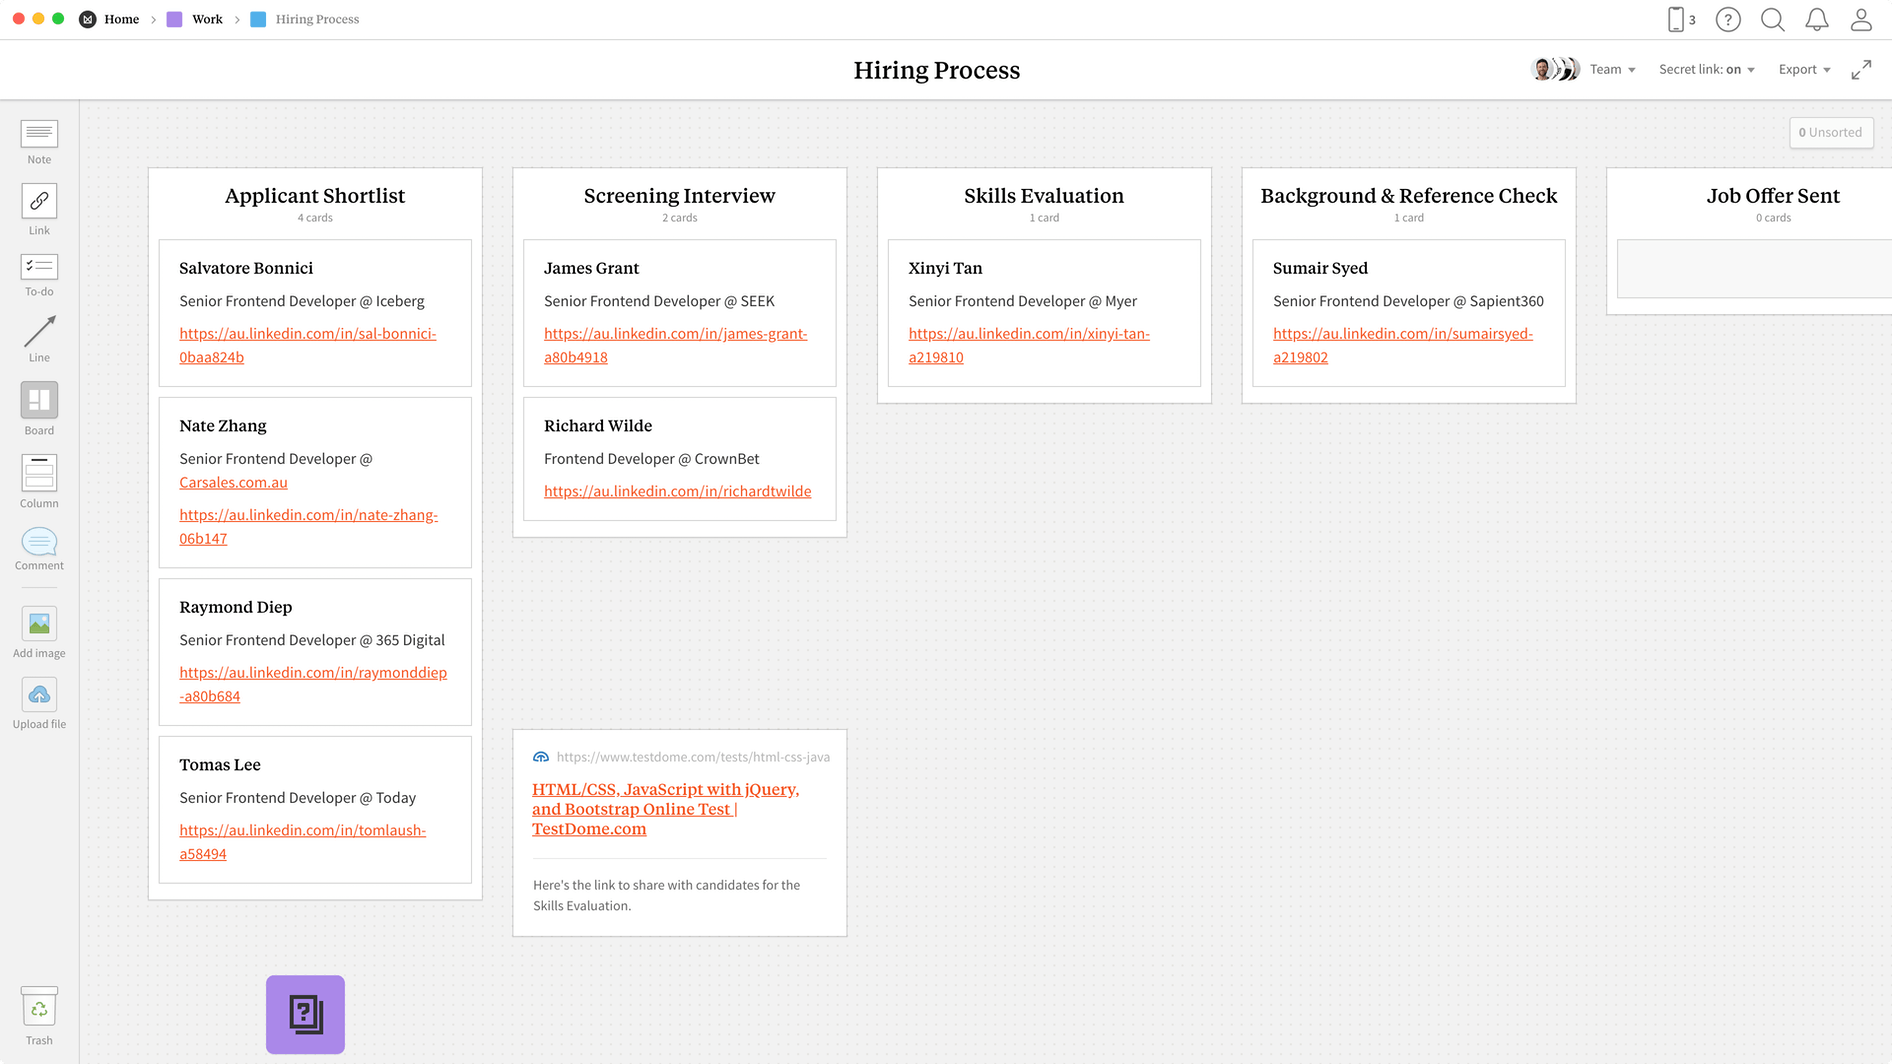 Hiring Process Template, within the Milanote app